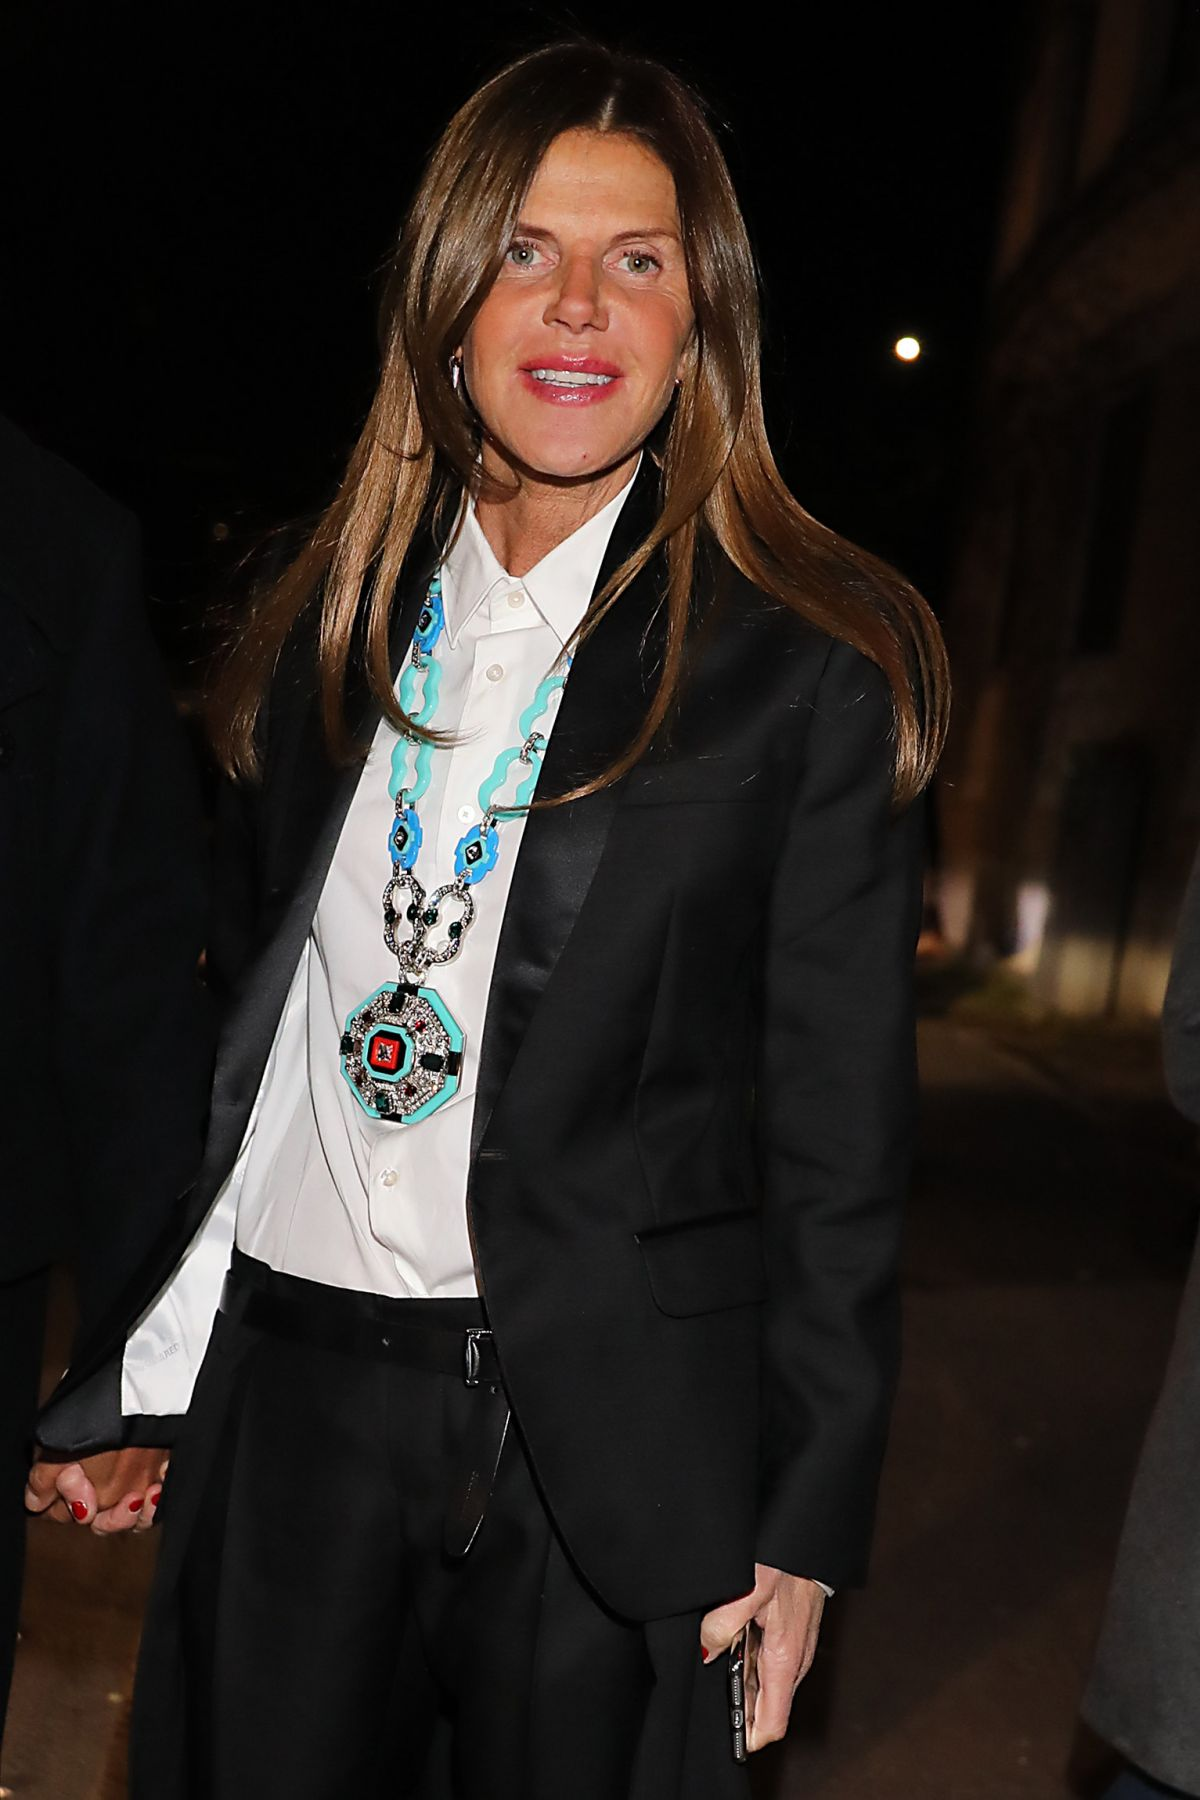 ANNA DELLO RUSSO at Dsquared2 Fall/Winter 2017 Fashion Show in Milan 01/15/2017